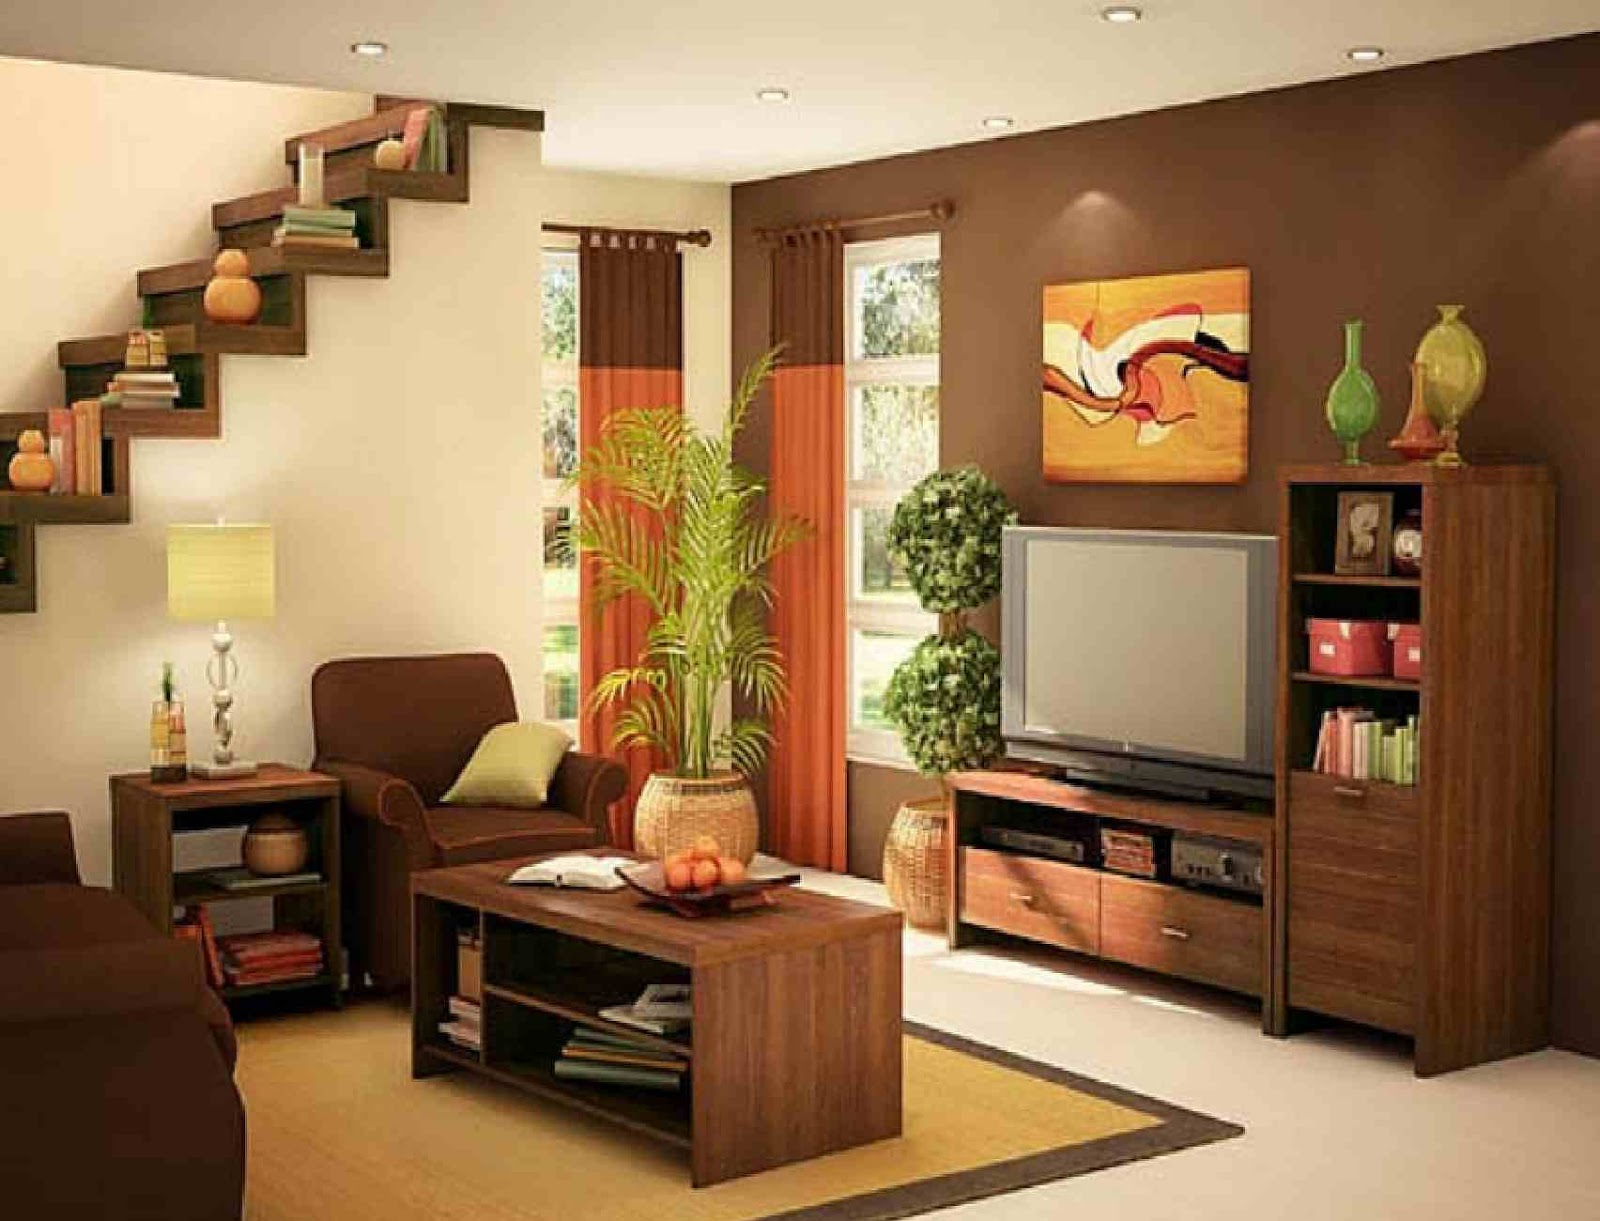 Simple living room designs dream house experience for Simple house decoration